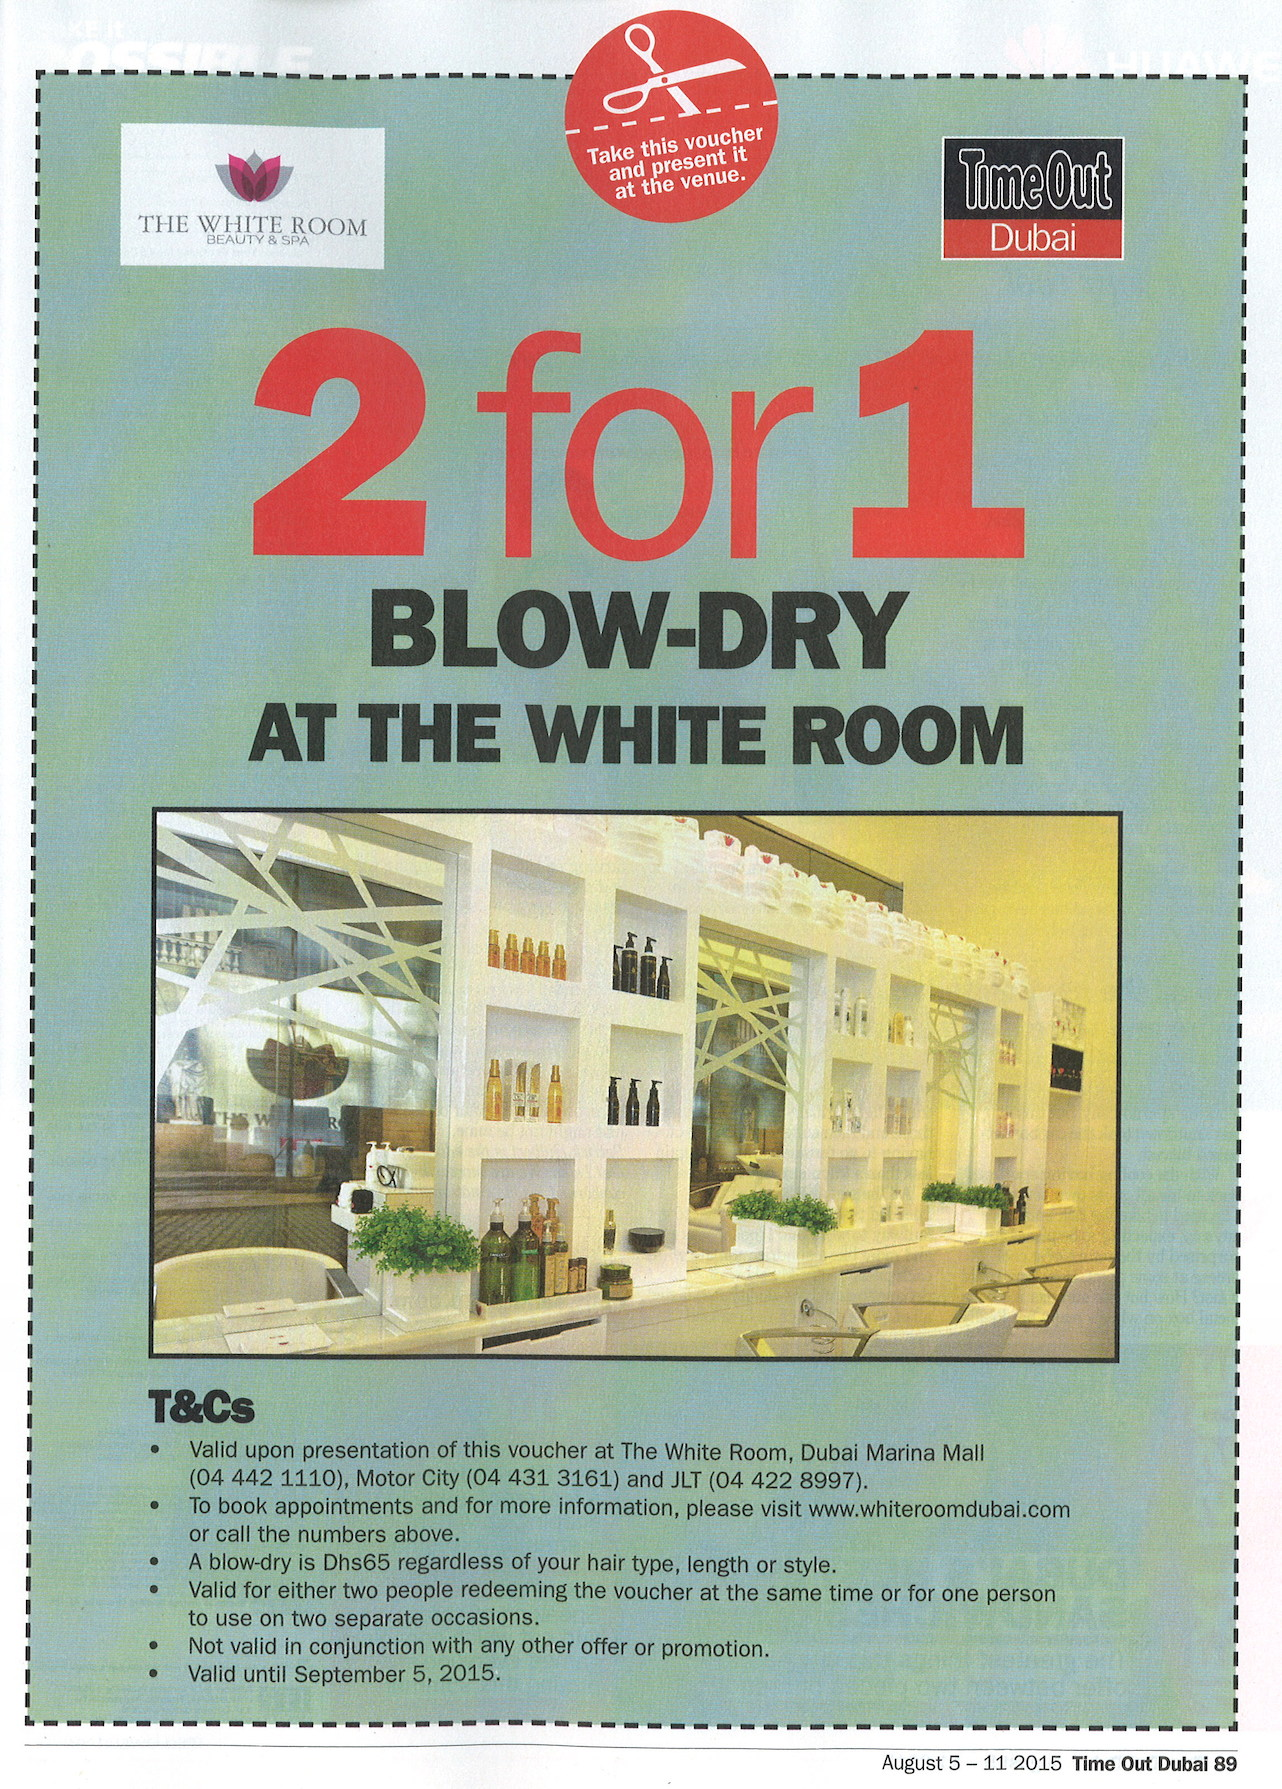 Time Out Dubai - The White Room - 5-11 August 2015